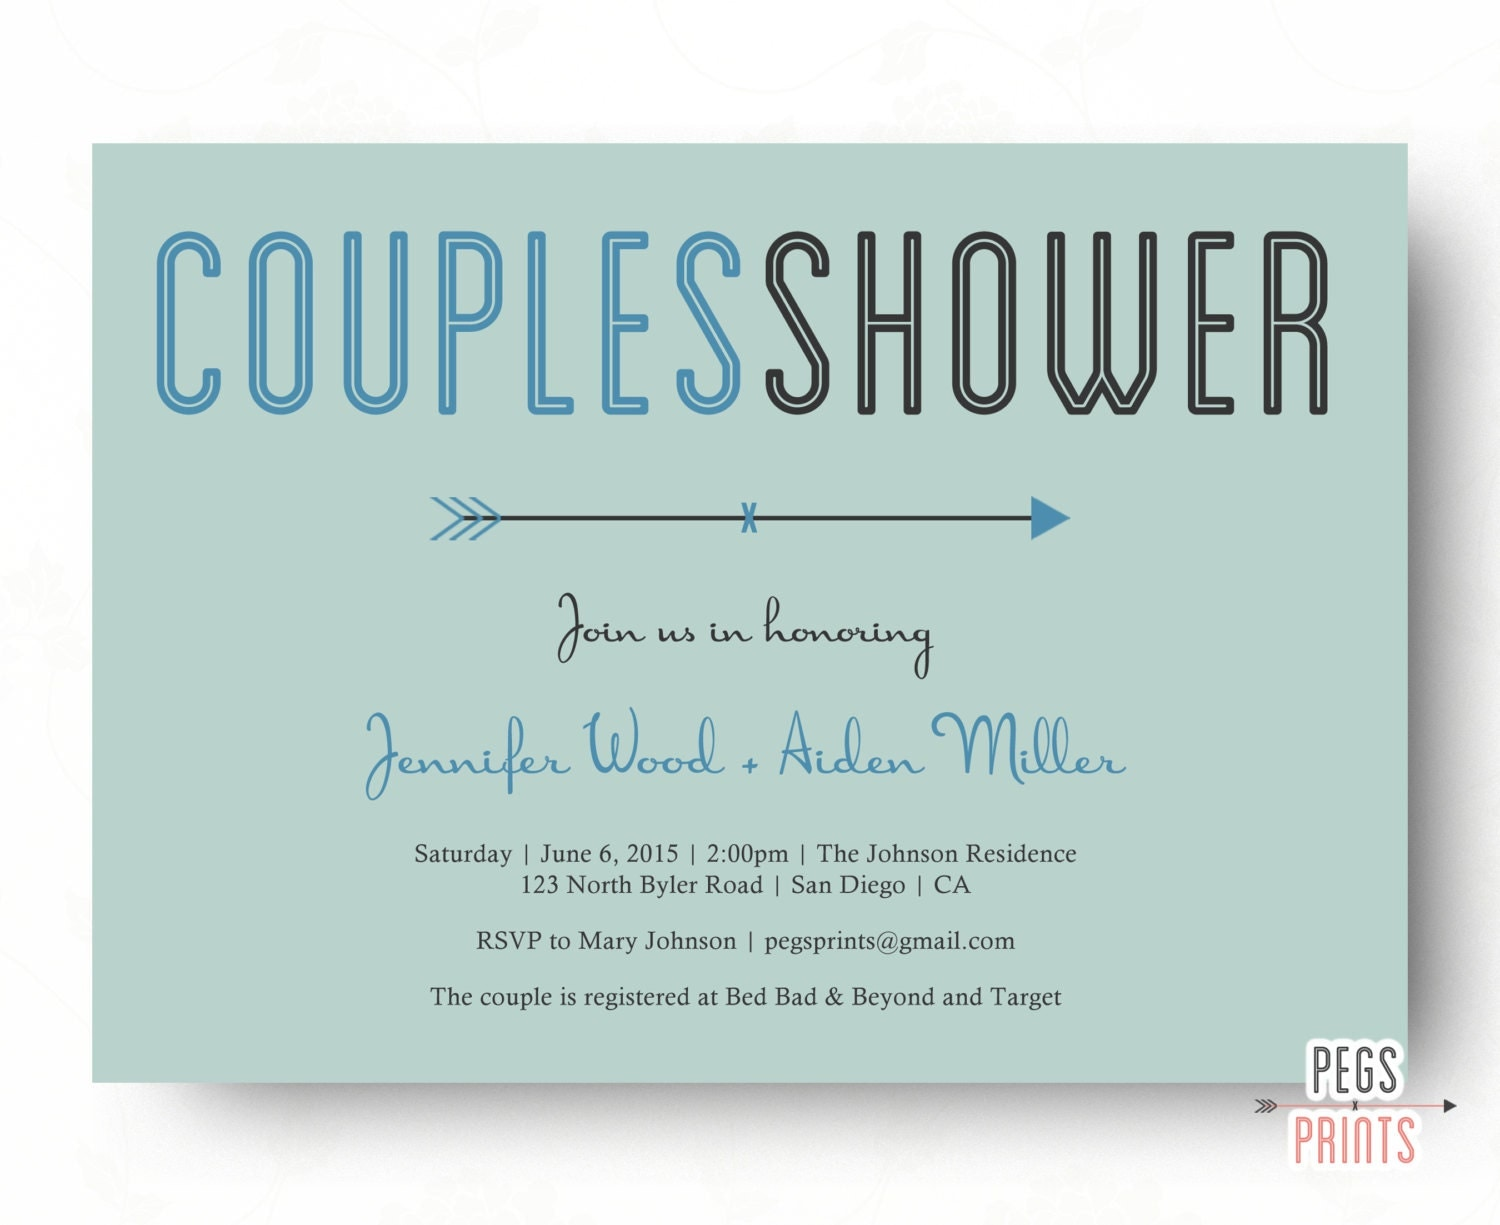 Wedding Shower Invitations For Couples: Printable Couples Shower Invitation Couples Wedding Shower